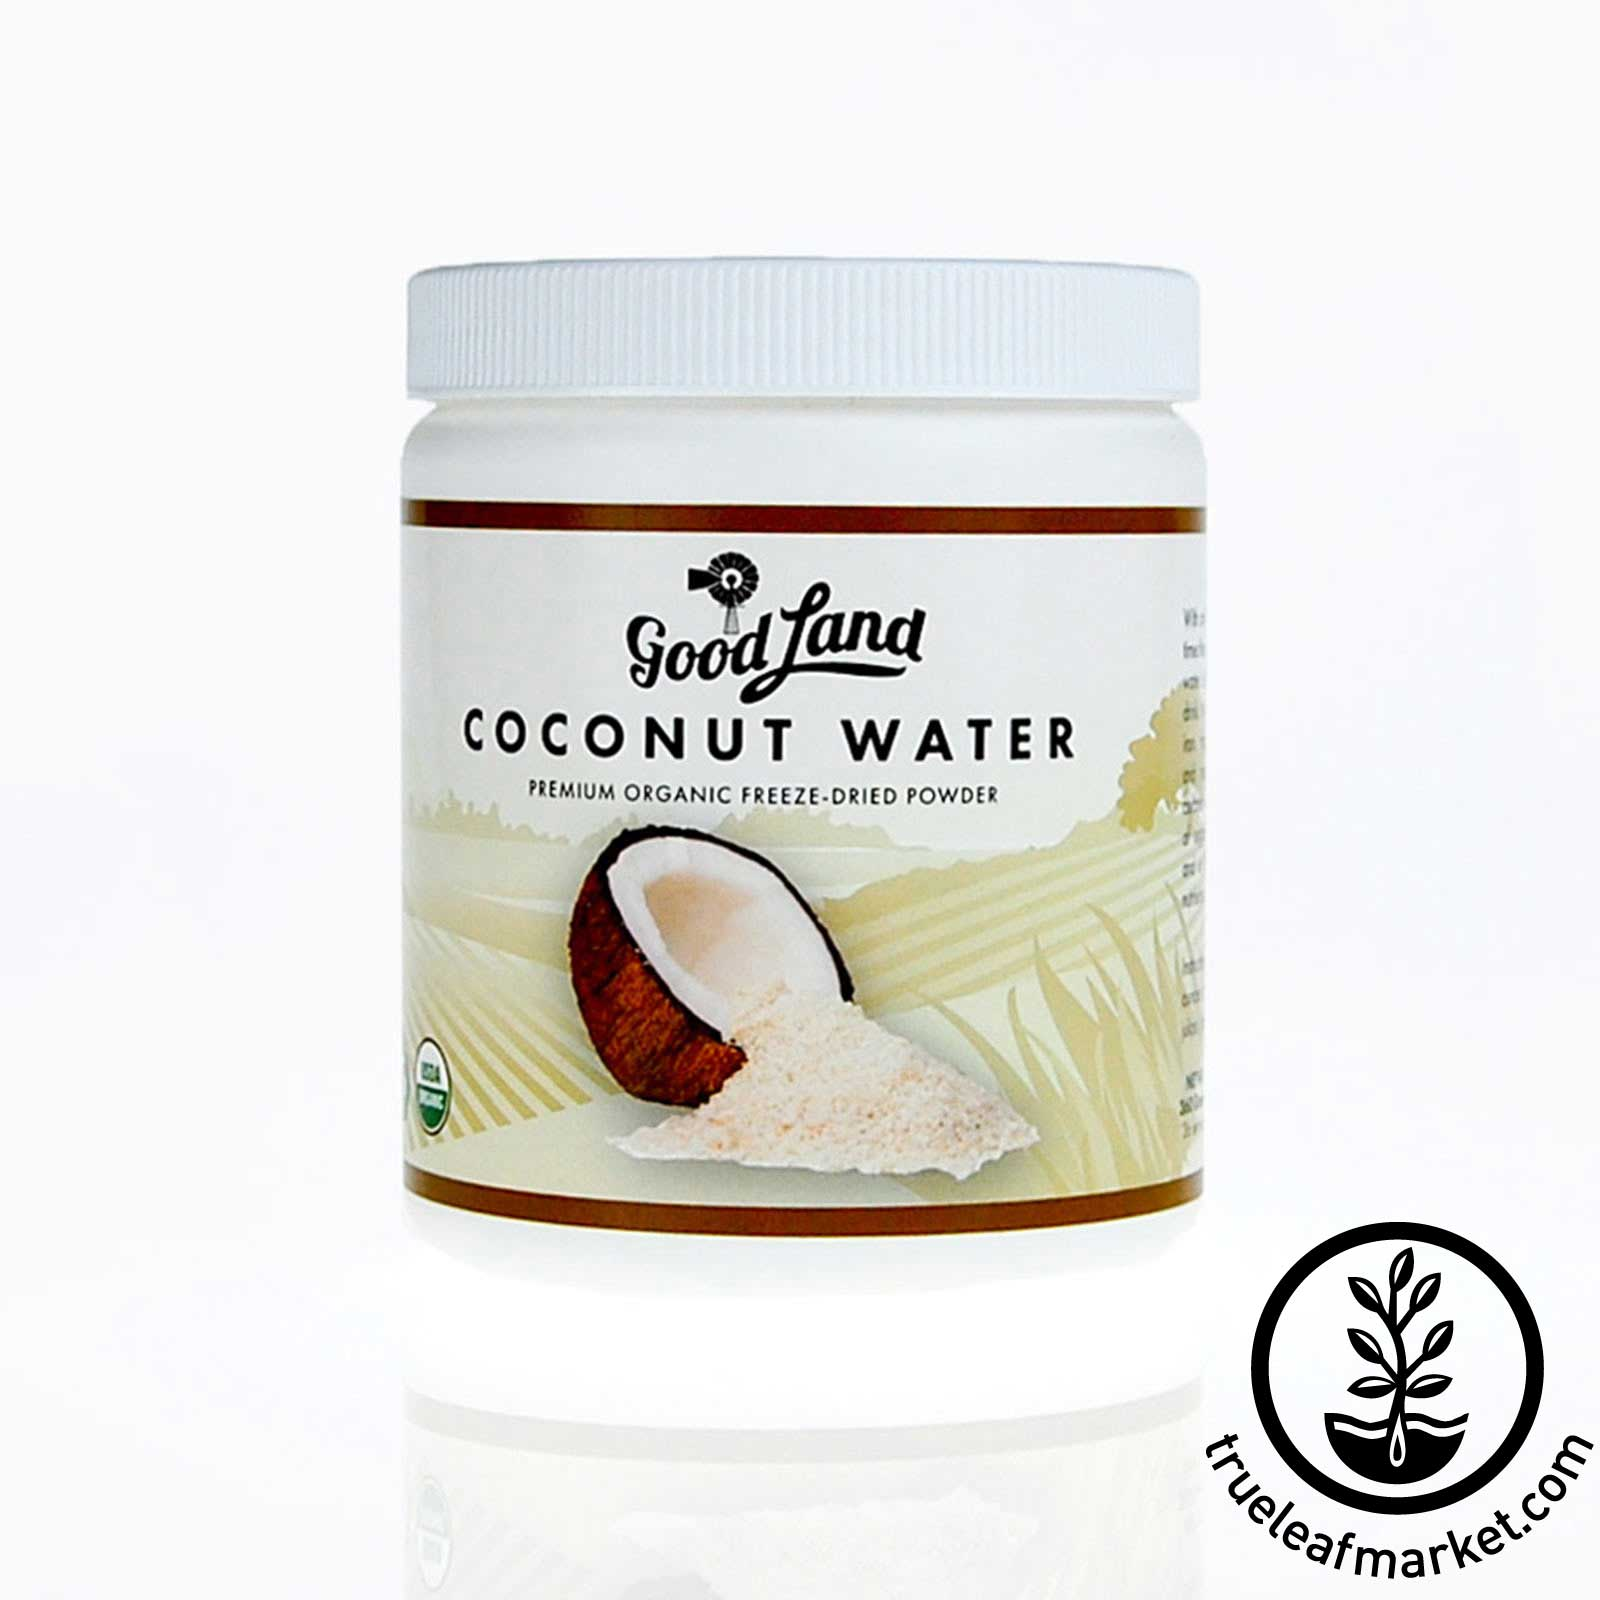 Freeze Dried Coconut Water coconut water powder, organic powdered coconut water